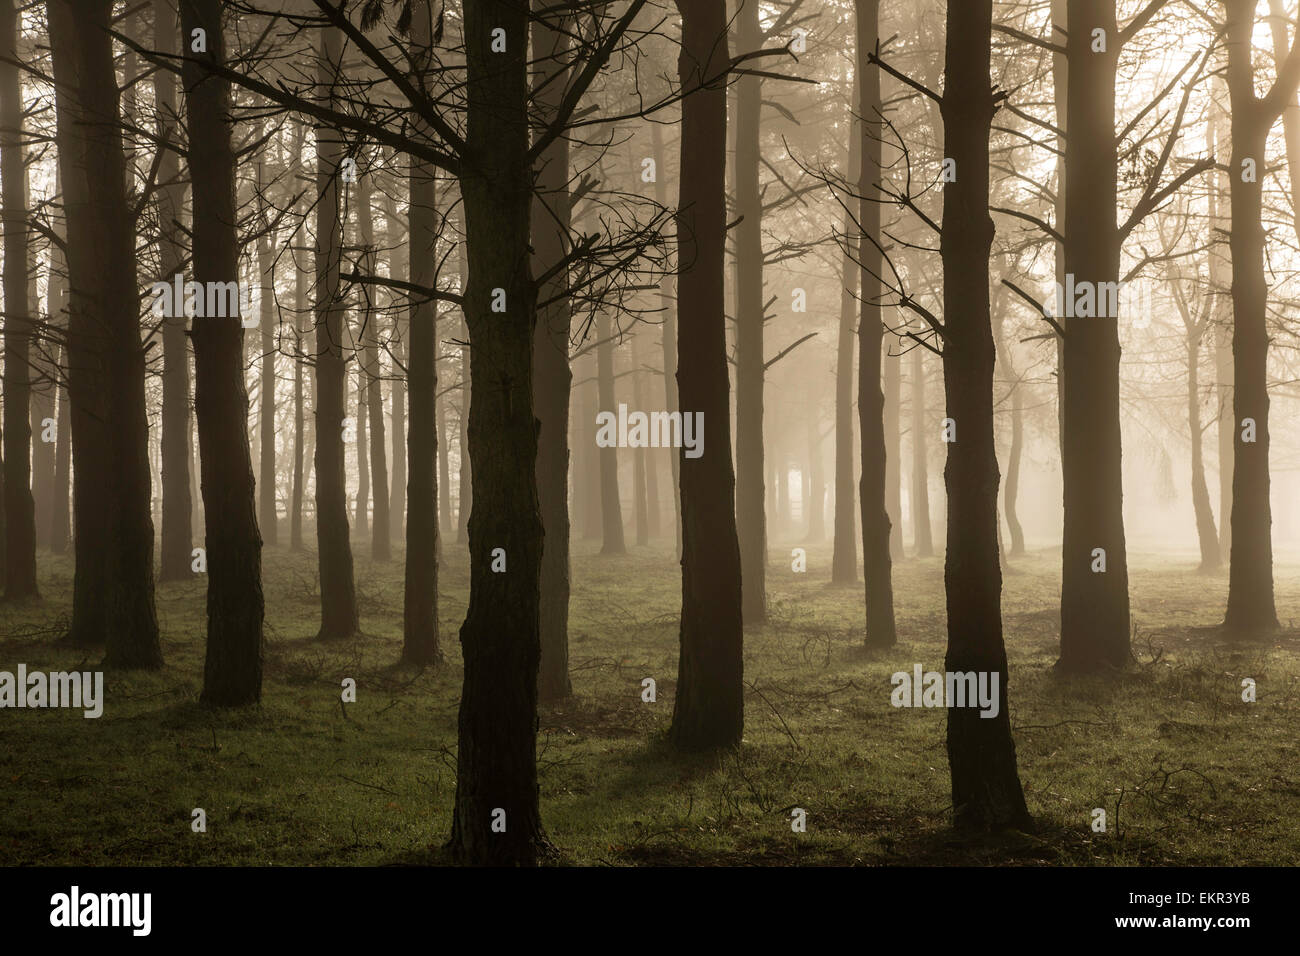 Sunrise in a conifer forest - Stock Image